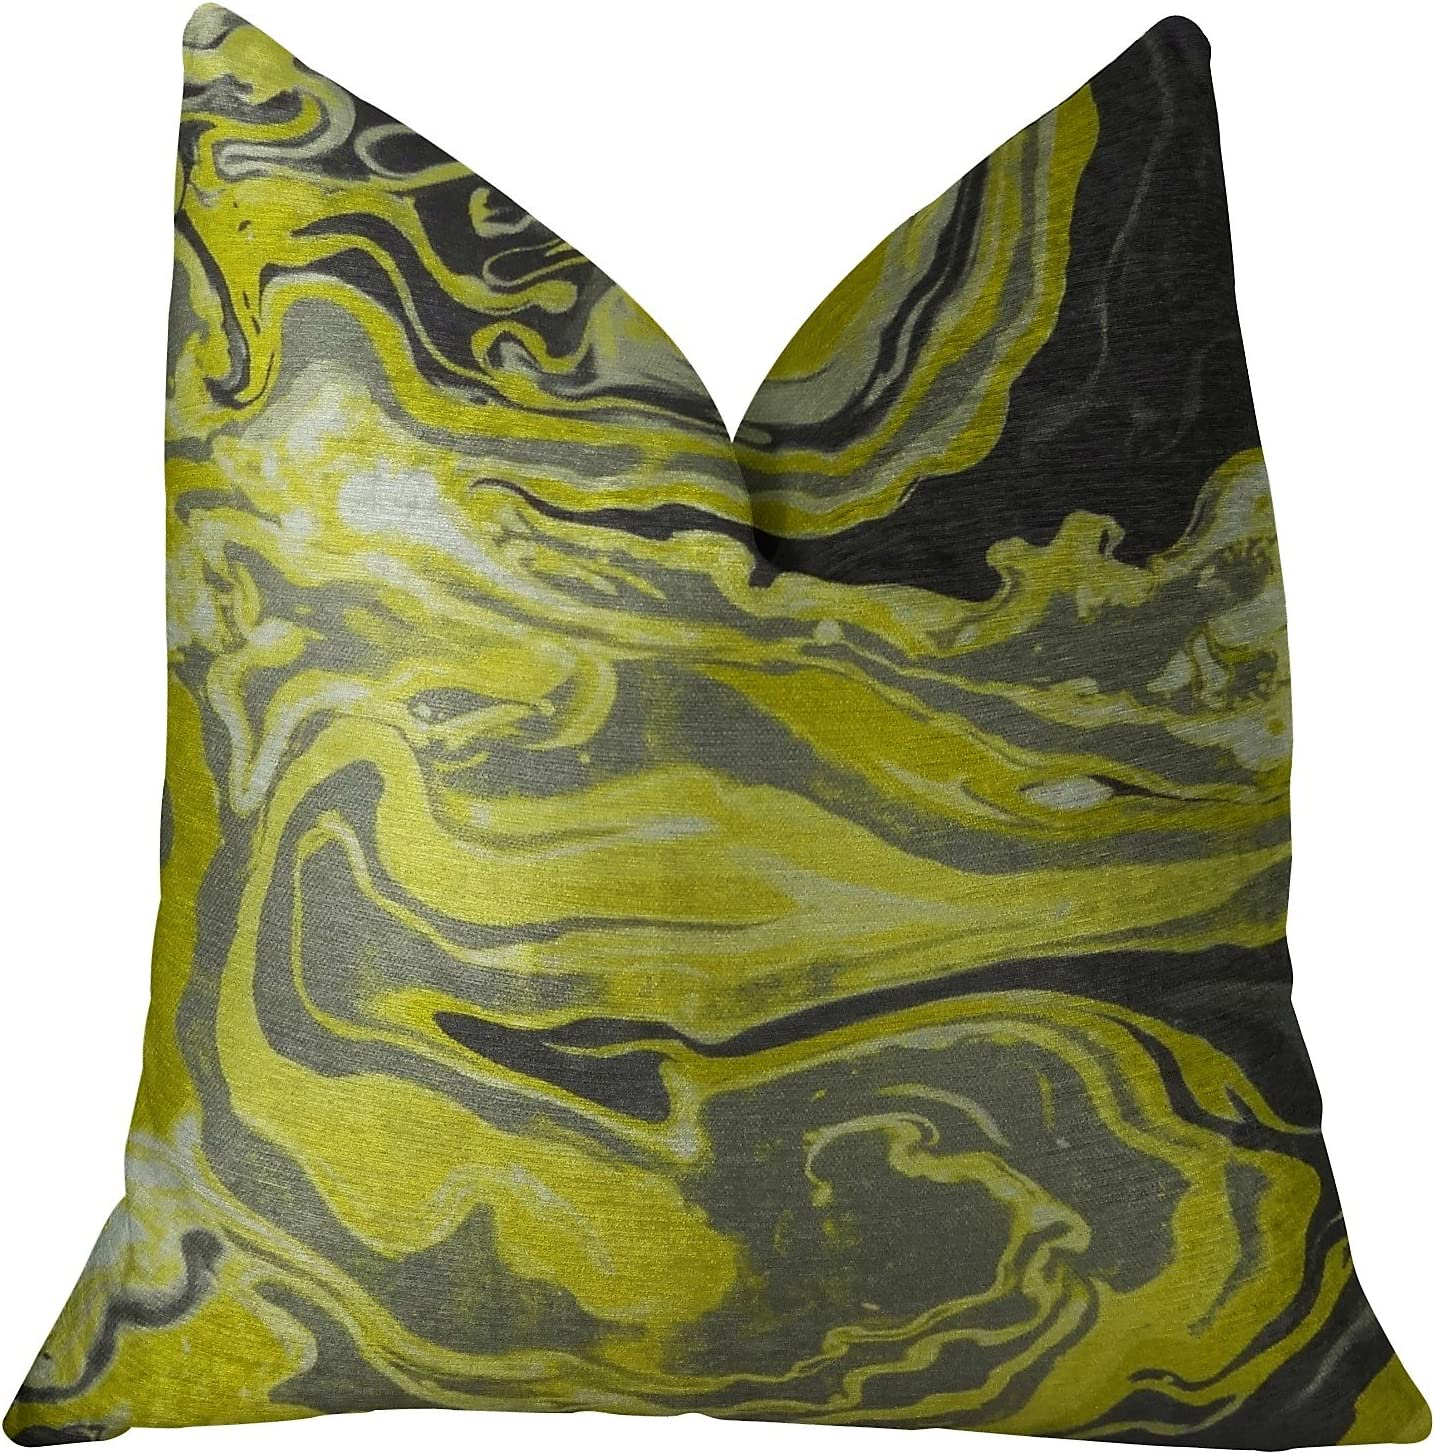 Plutus Brands Online limited product Medici Marble Ink Throw Handmade Super popular specialty store Pillow 20